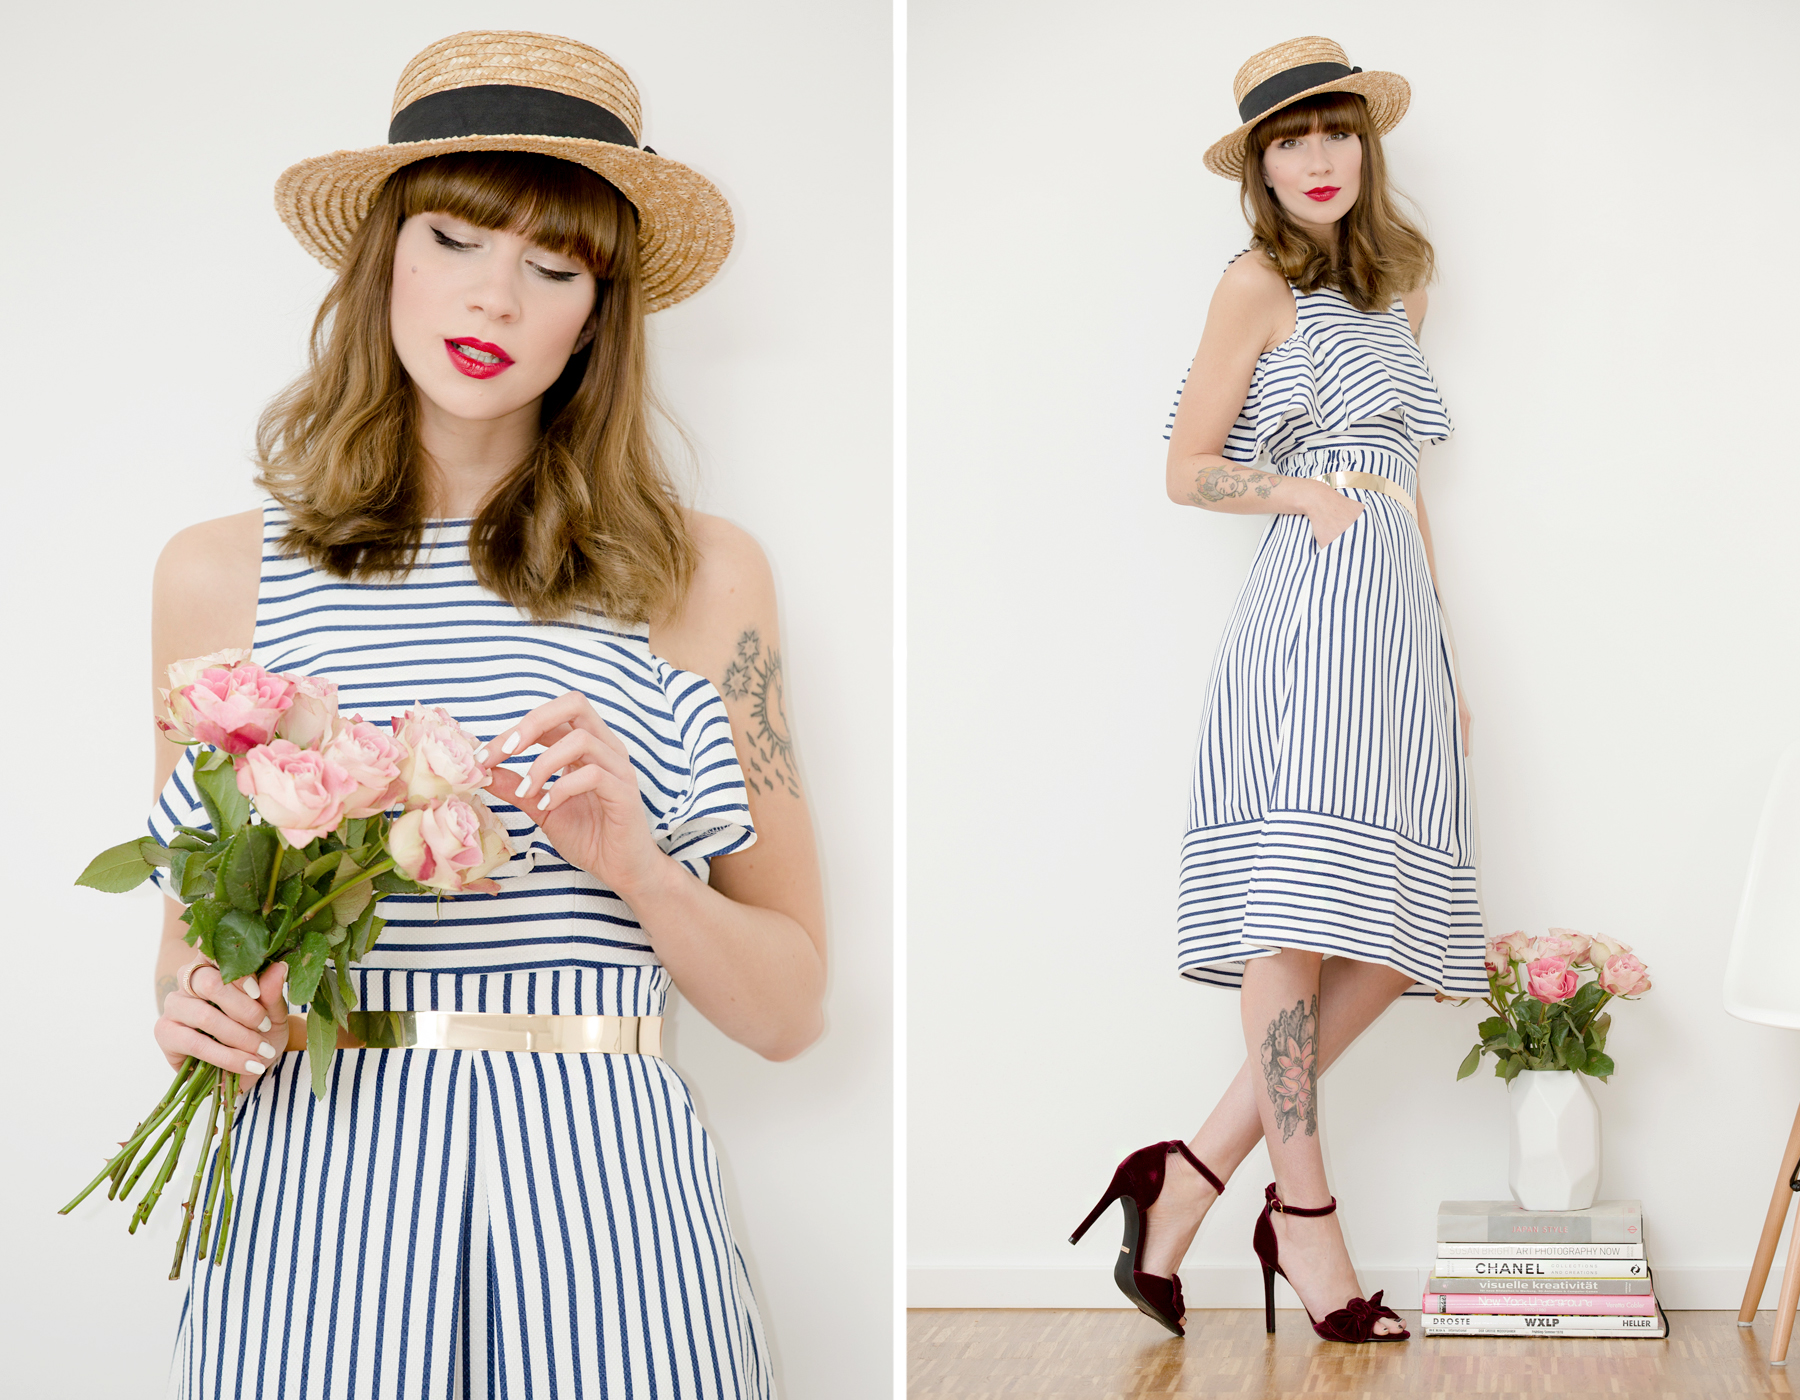 shopbop striped outfit styling topshop roses valentines day valentinstag hut 50s 60s cute girly girl bangs brunette red lips ootd outfit fashionblogger ricarda schernus cats & dogs blog 1